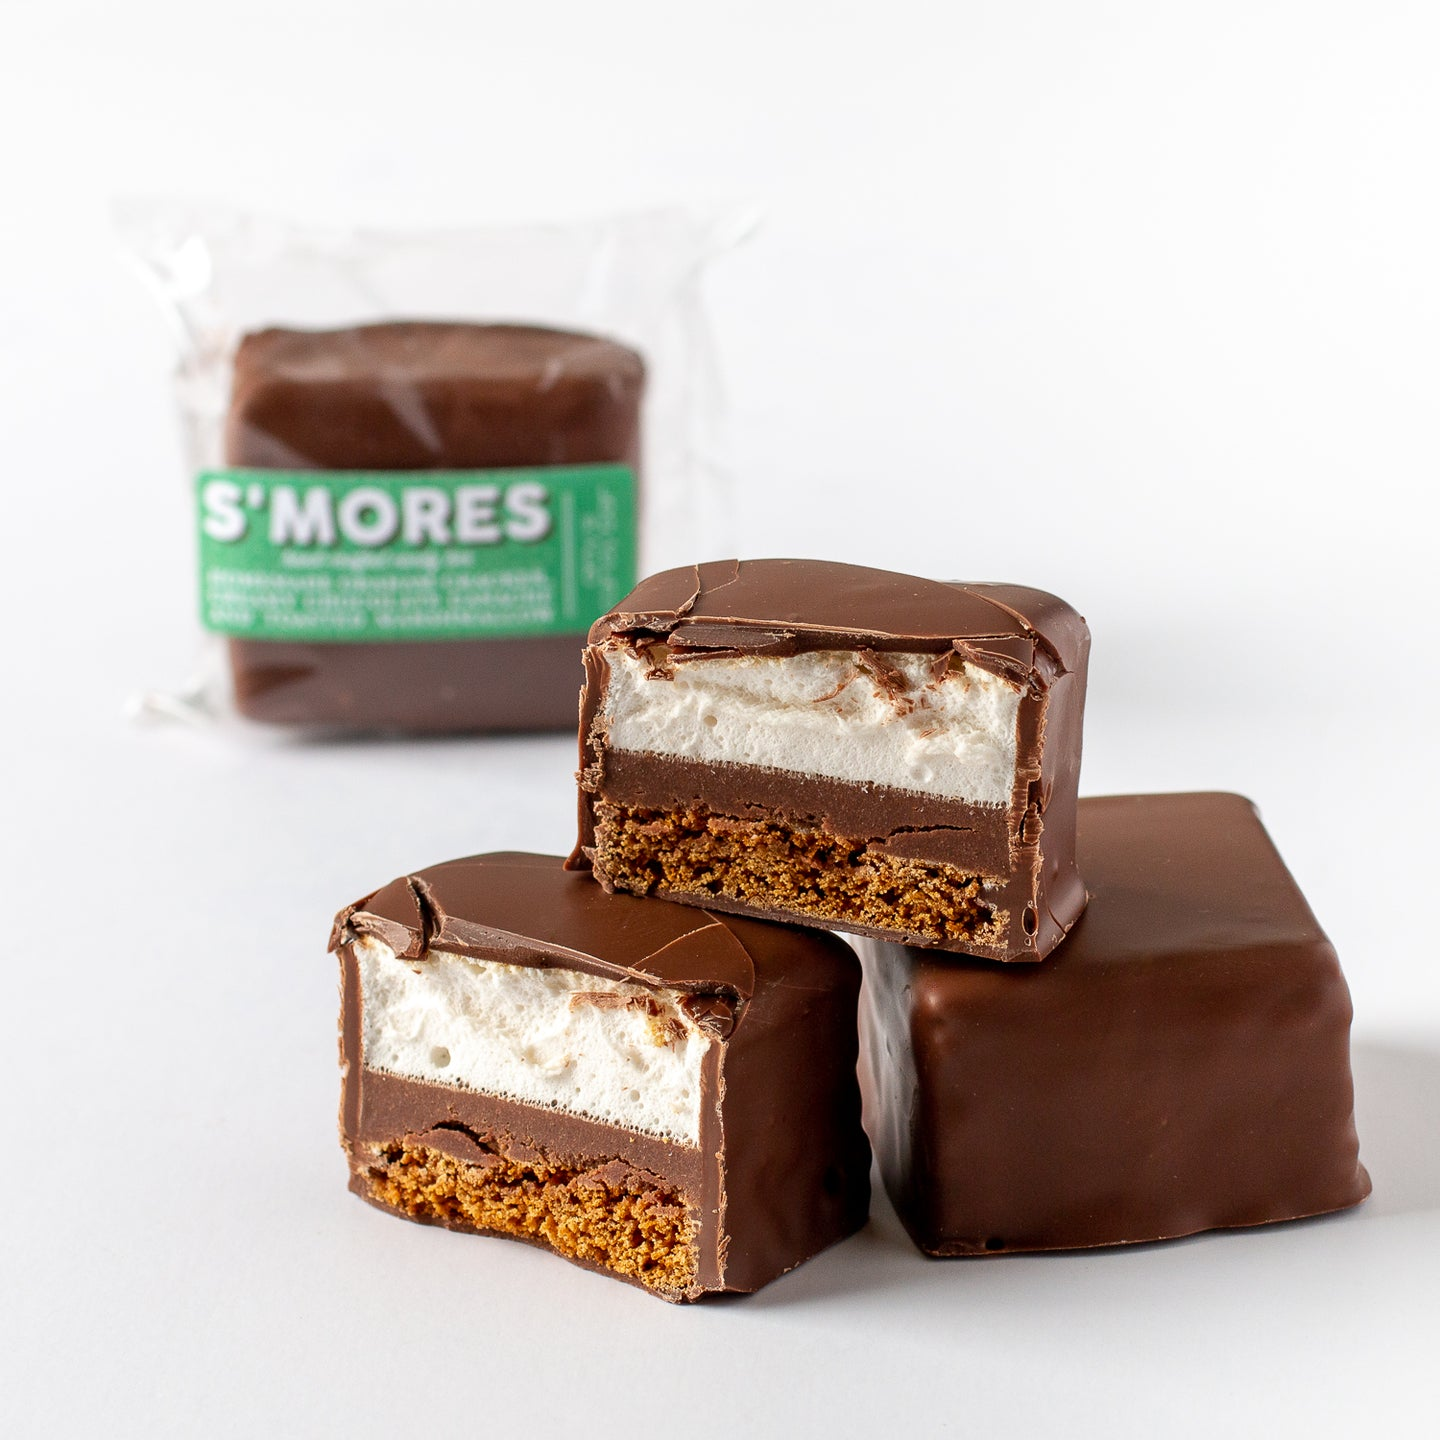 S'MORES Candy Bar Amy's Candy Bar Chicago